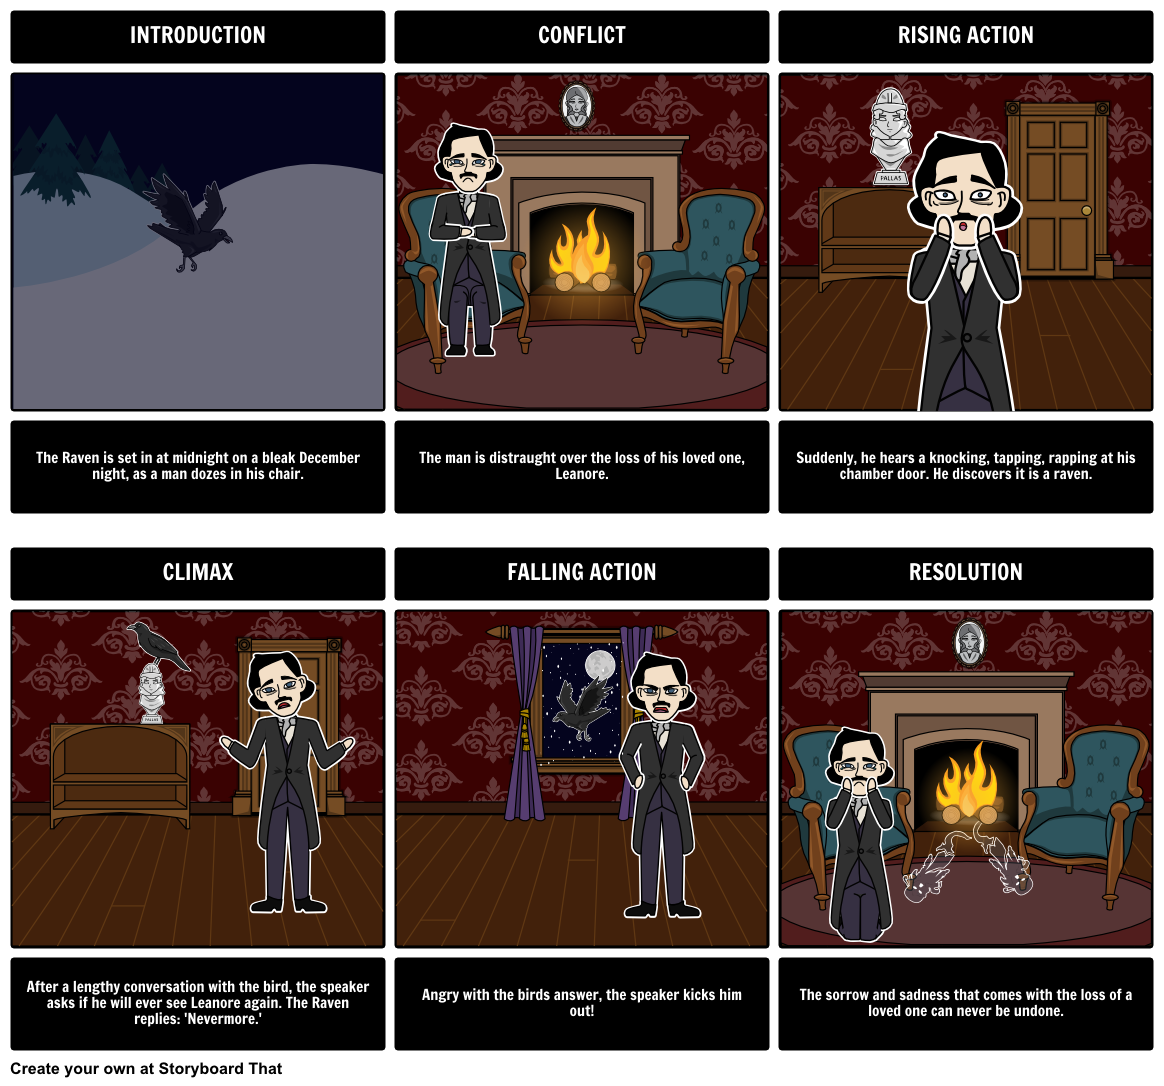 the raven by edgar allen poe summary follow the narrative arc the raven by edgar allen poe summary follow the narrative arc of the